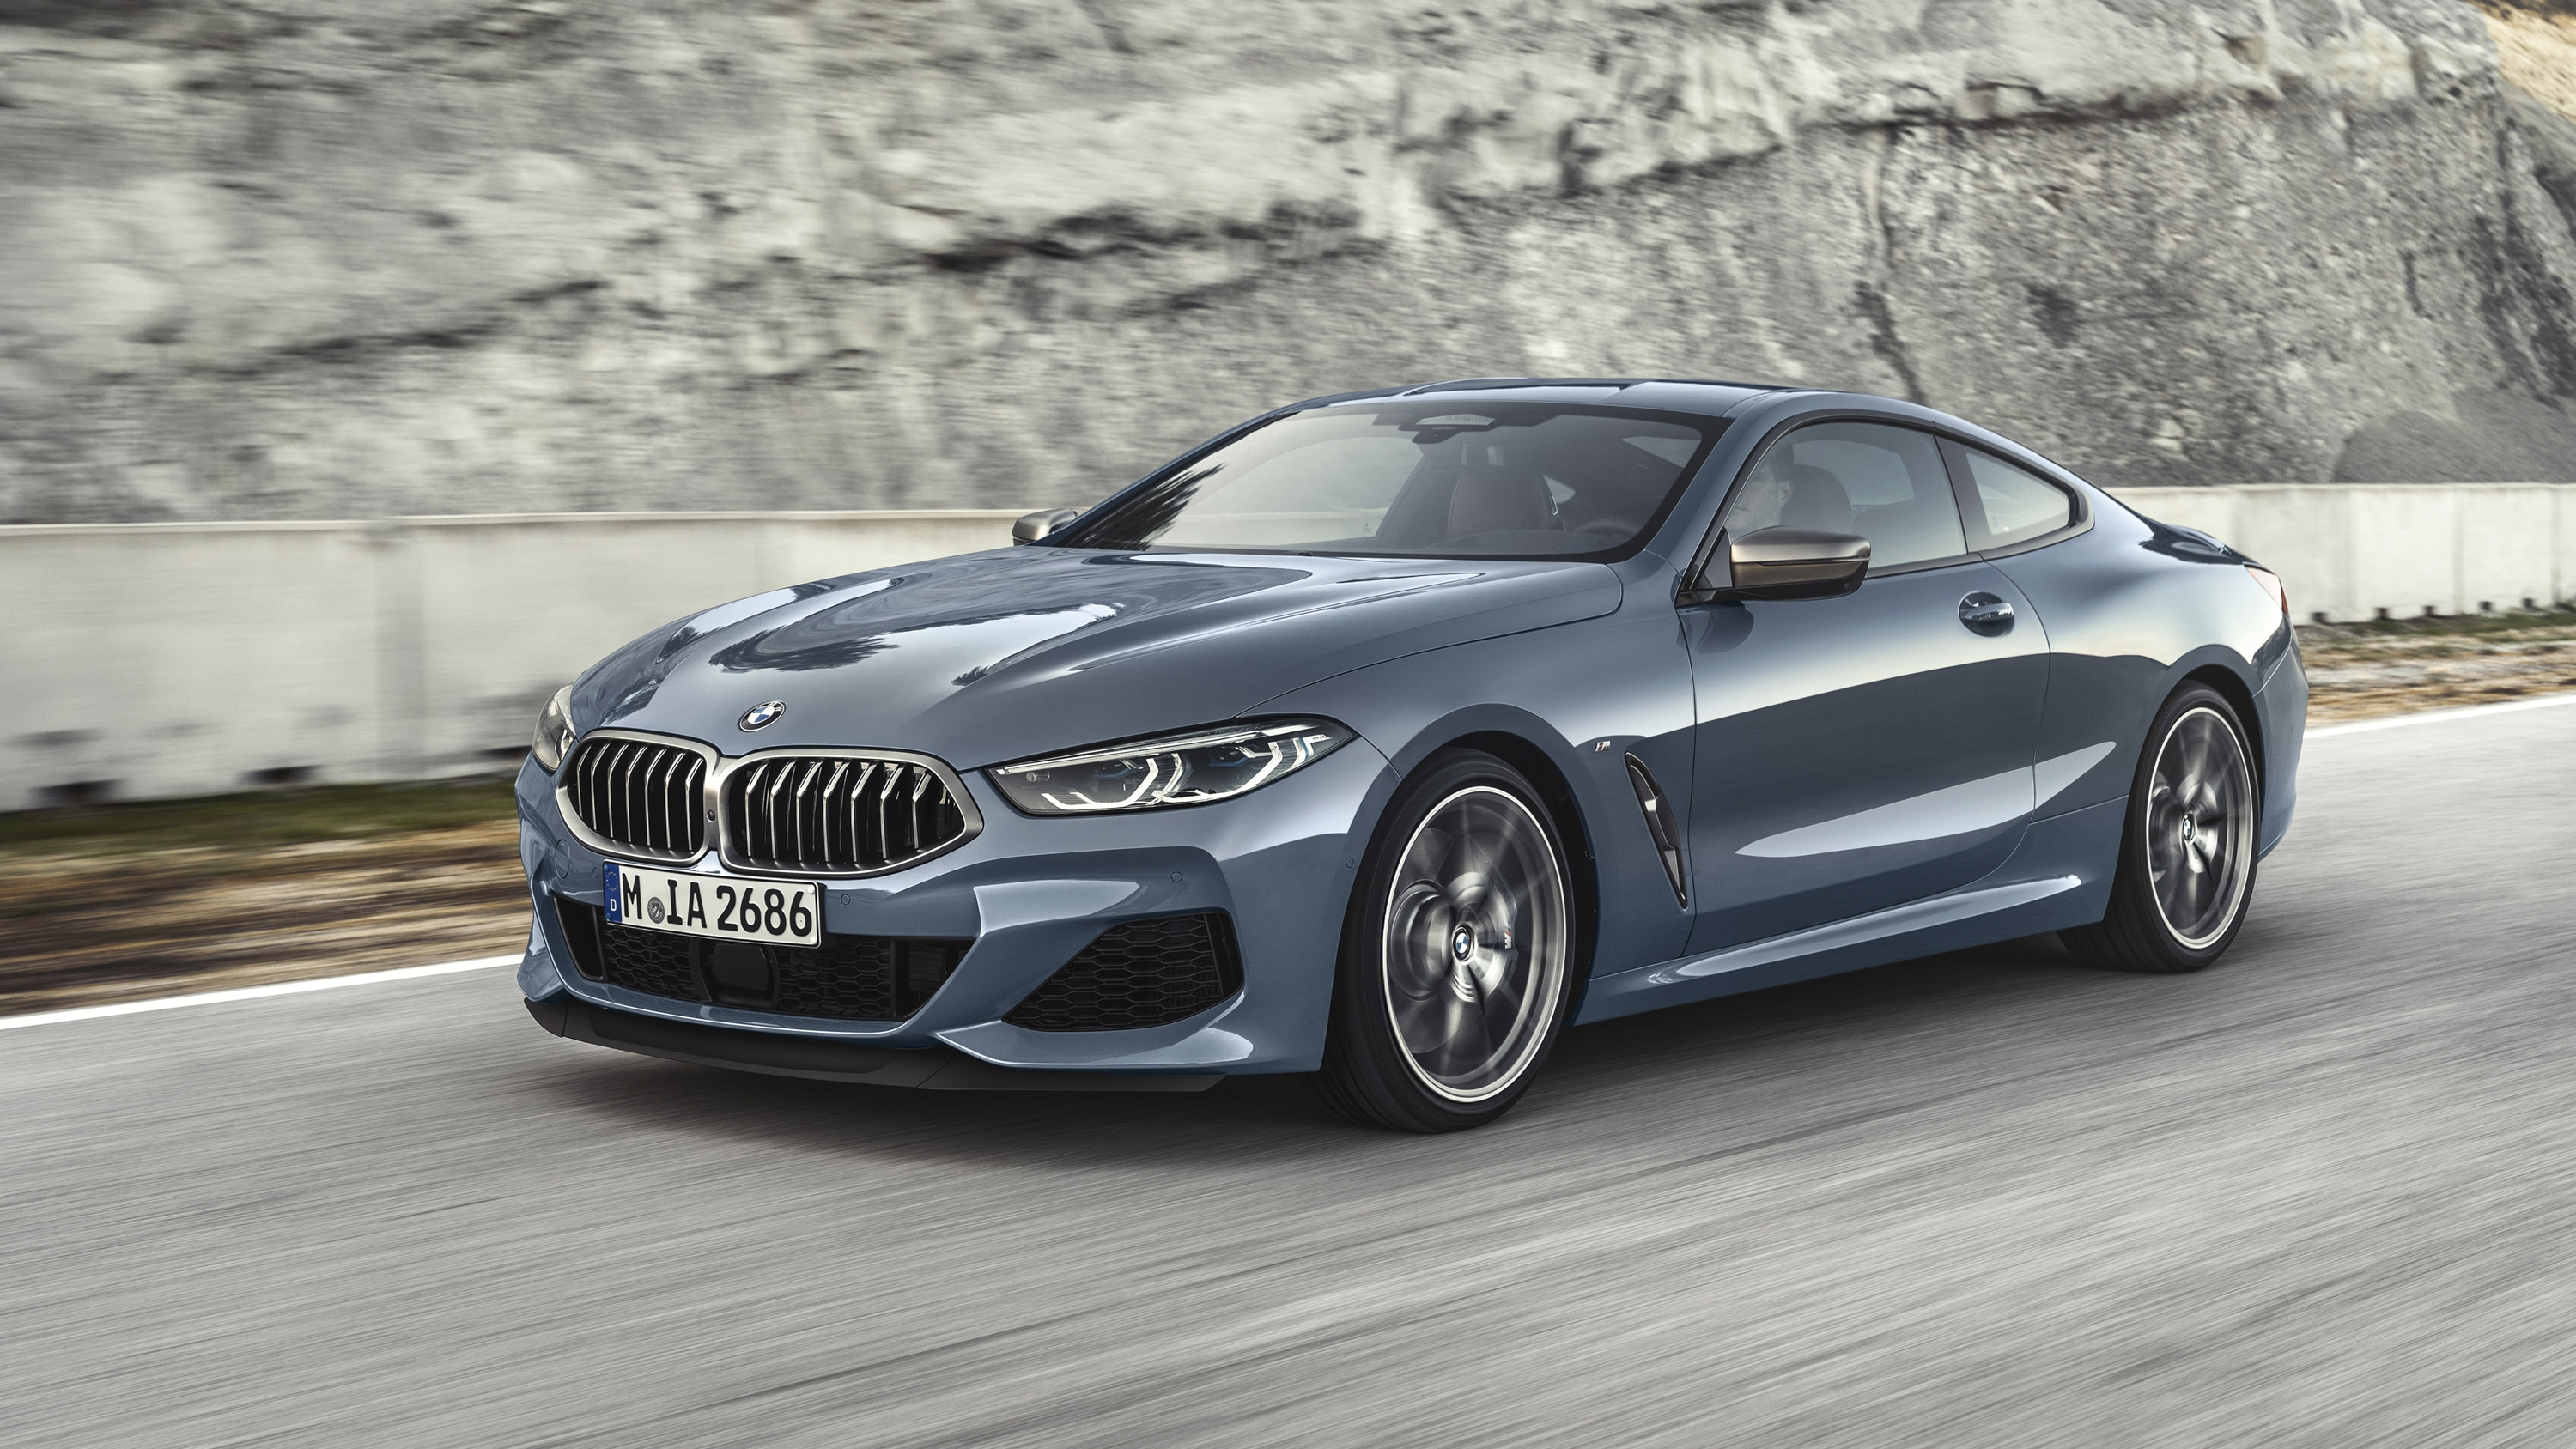 Cheap Used Muscle Cars >> The BMW 8 Series Is Out, But What Do We Know About The BMW M8?   Top Speed